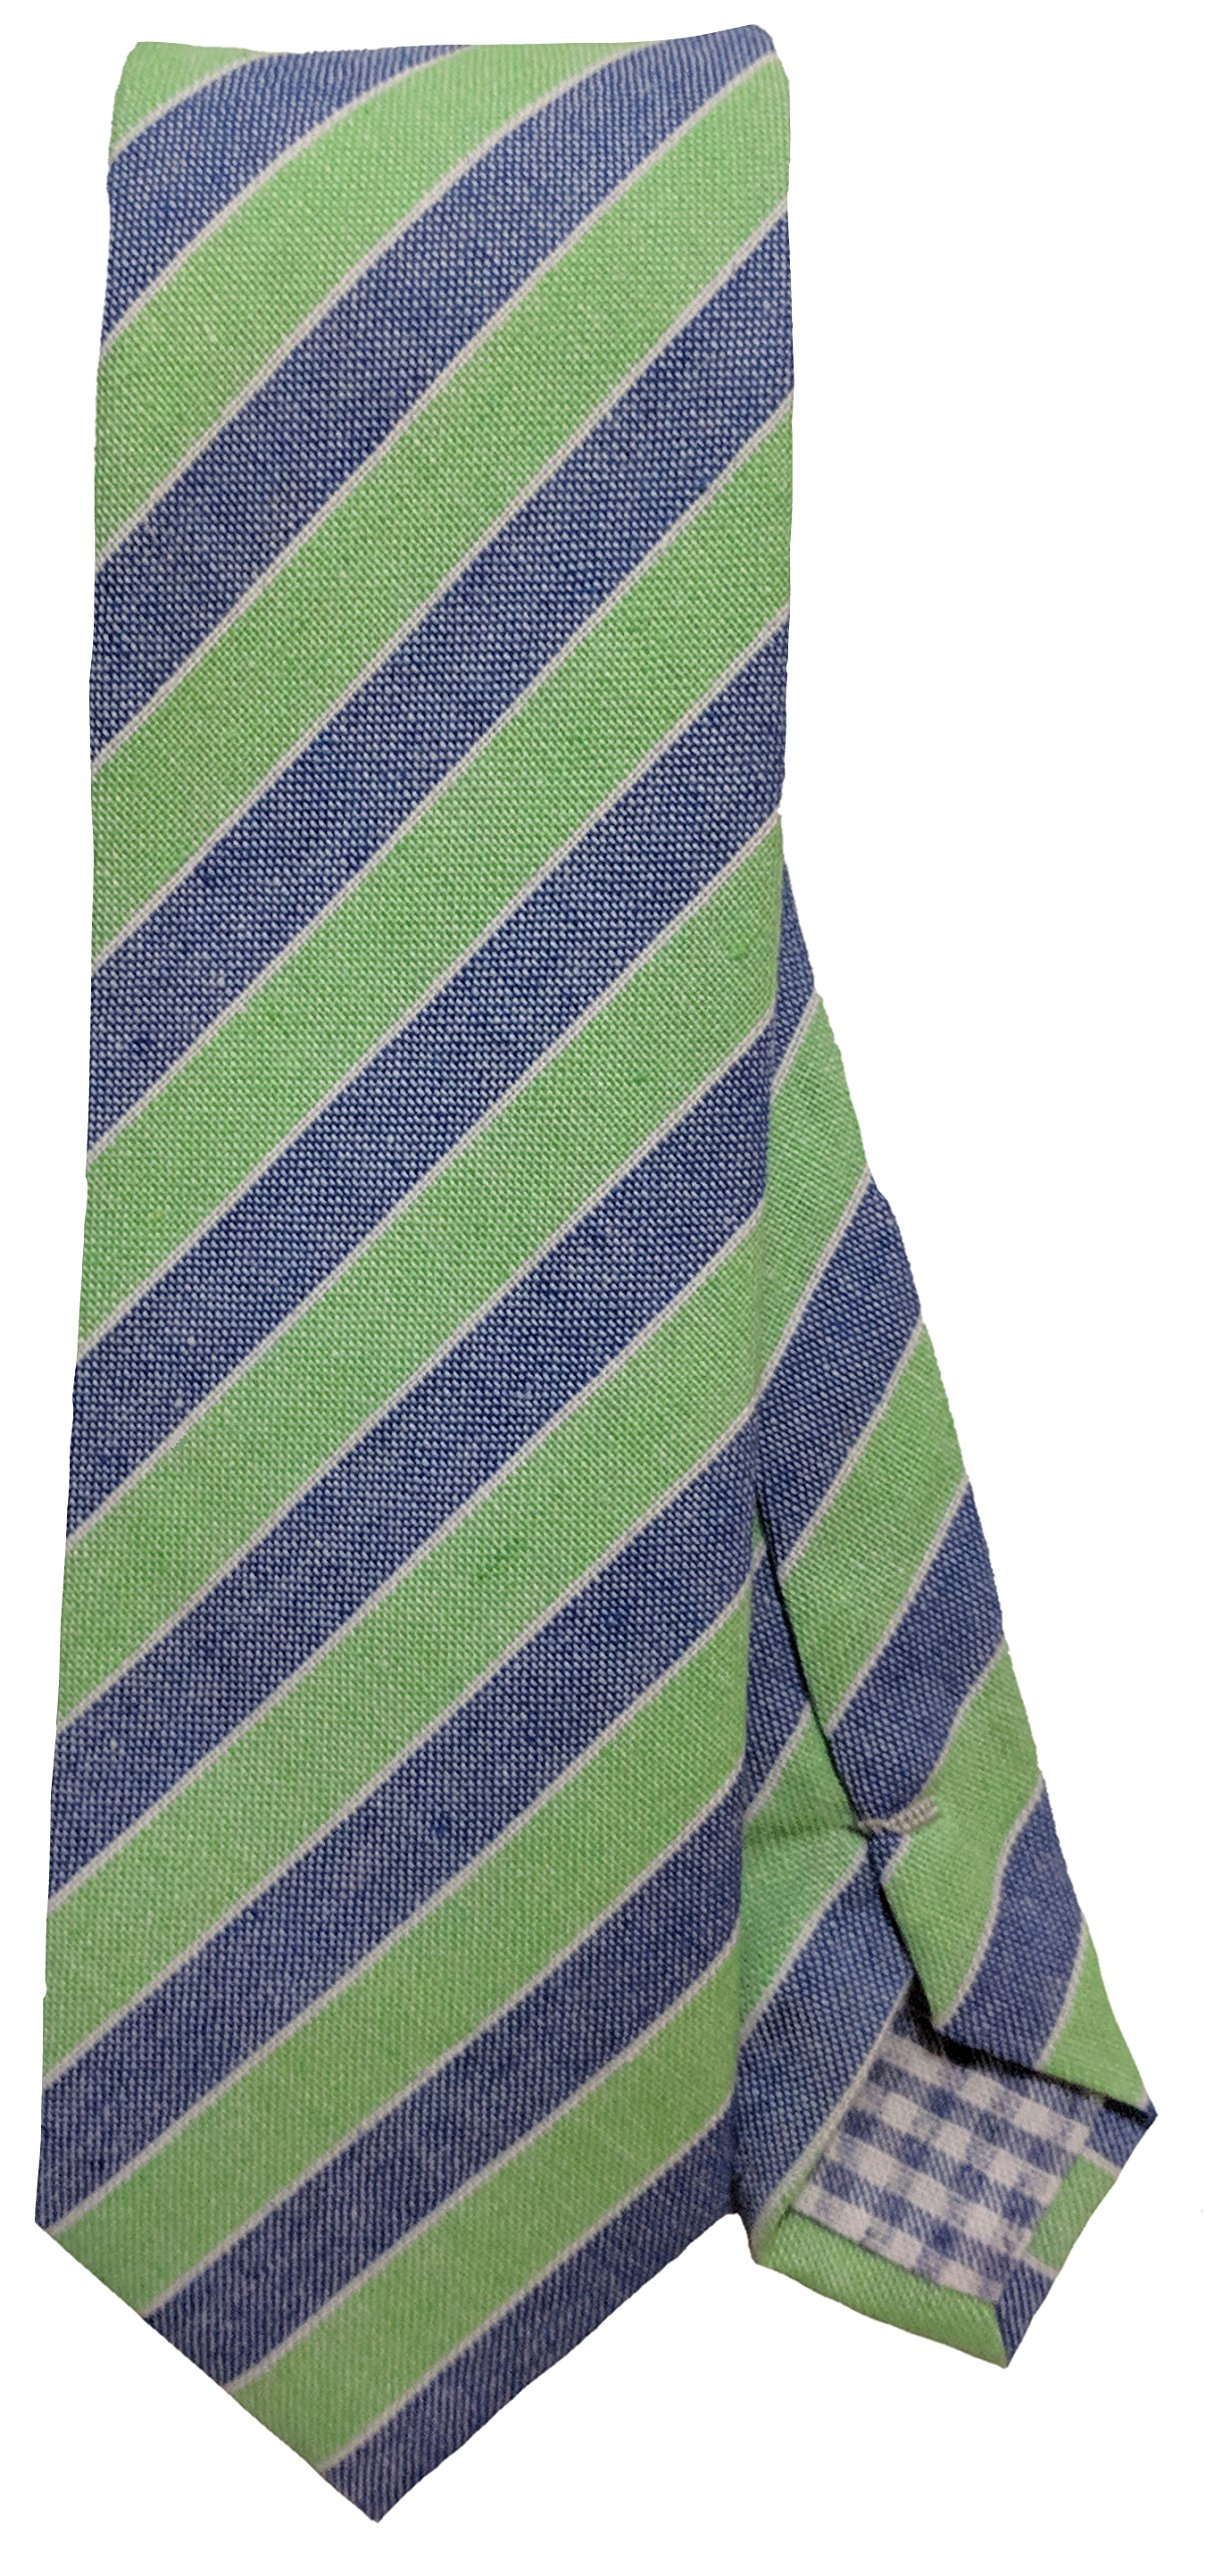 Men's Striped Linen Skinny Tie 2.5'' Business or Casual Multiple Colors (Green/Blue)